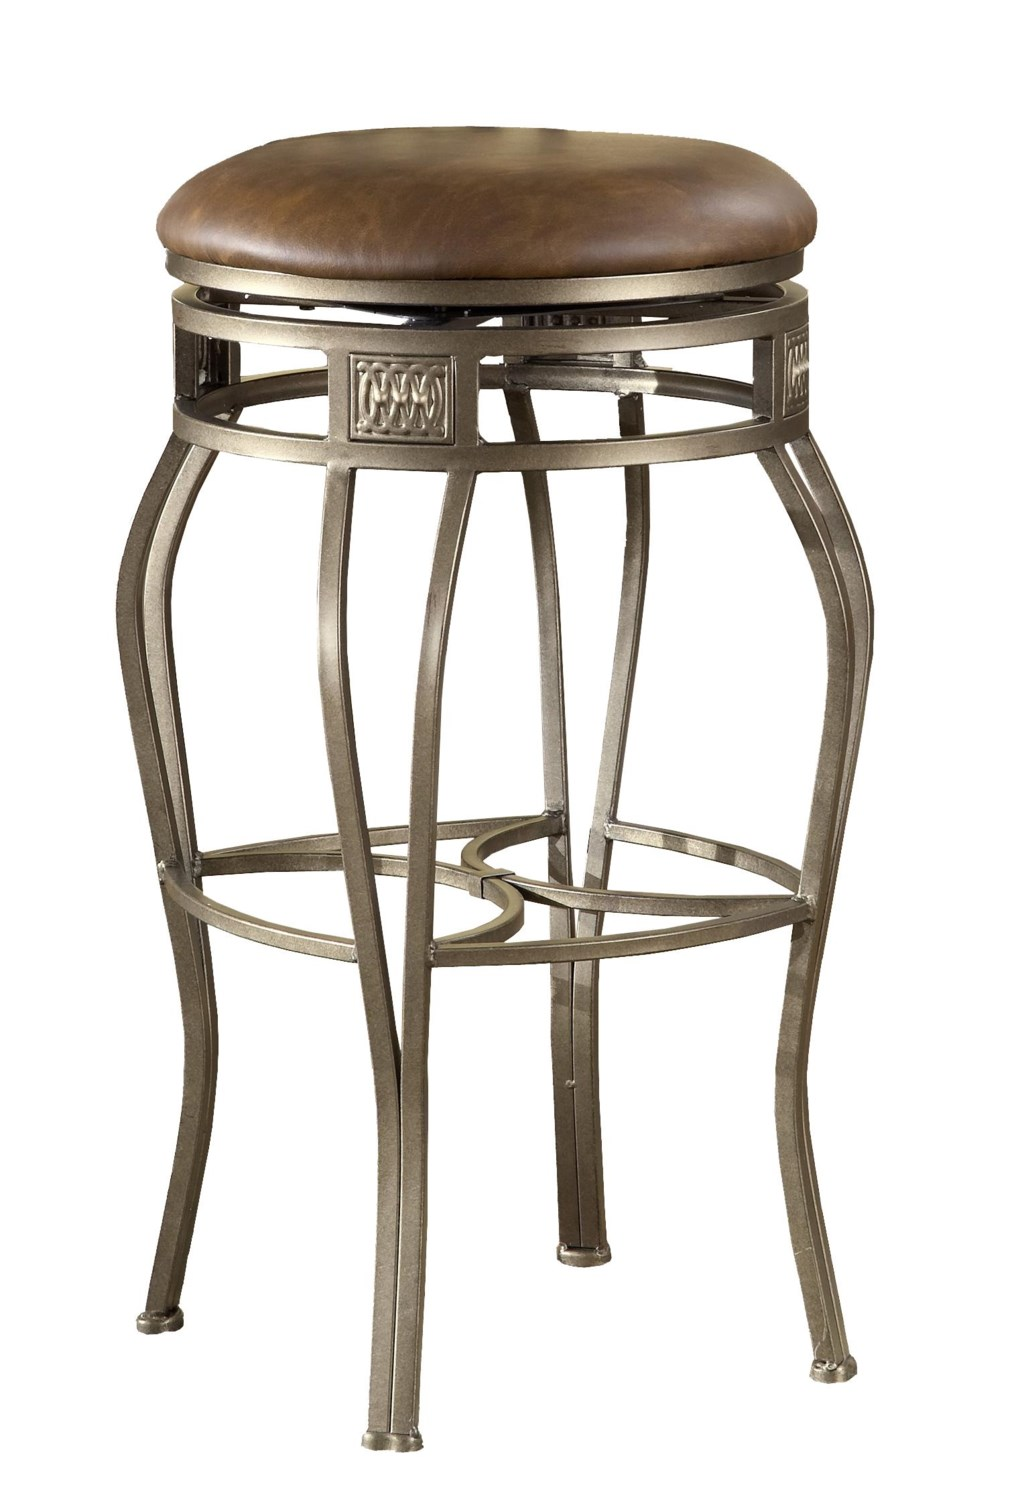 Backless bar stools 26 backless montello swivel counter stool by hillsdale